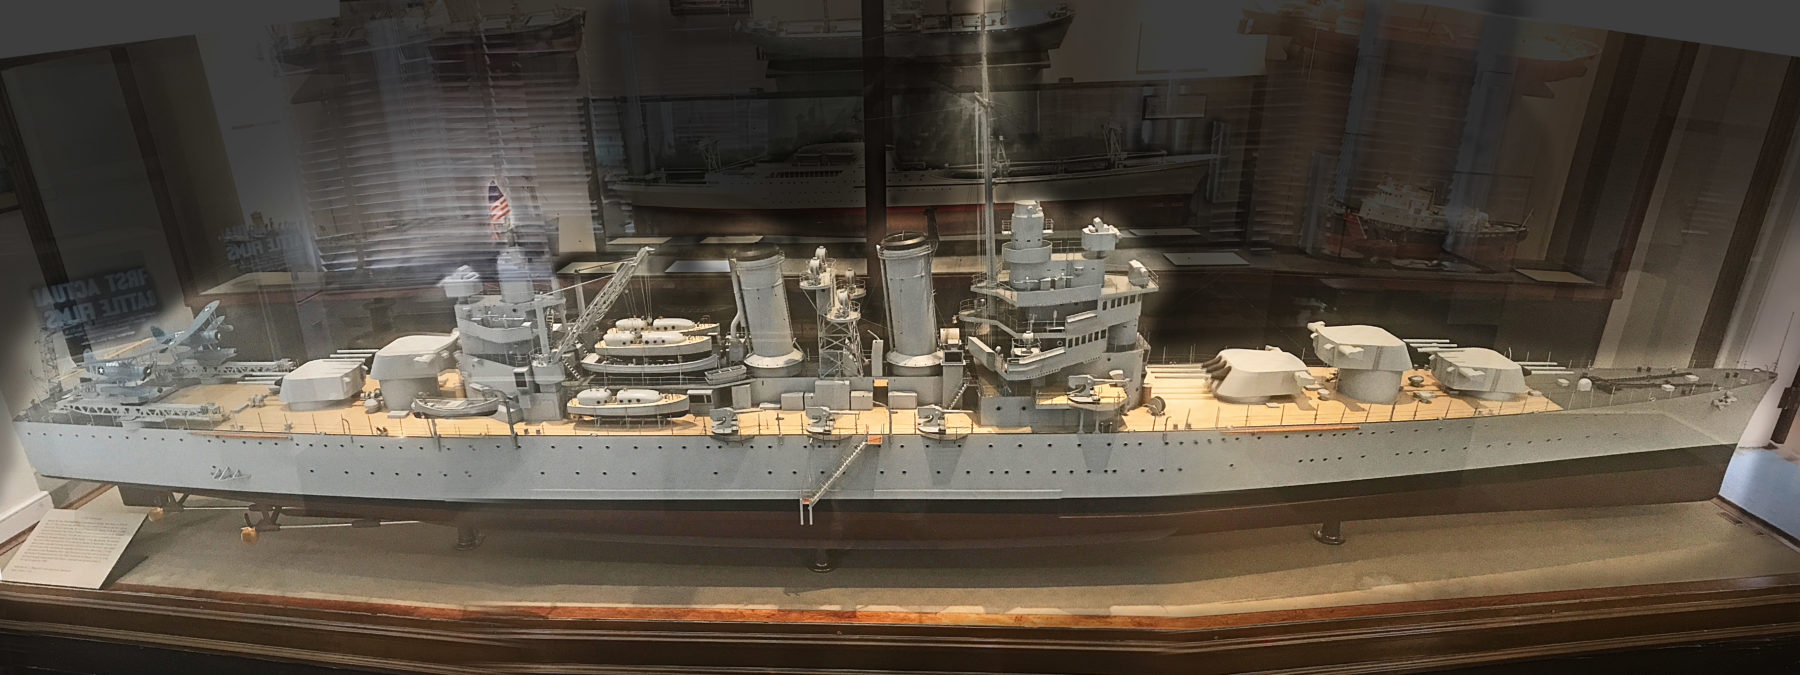 shipyard model of the Savannah